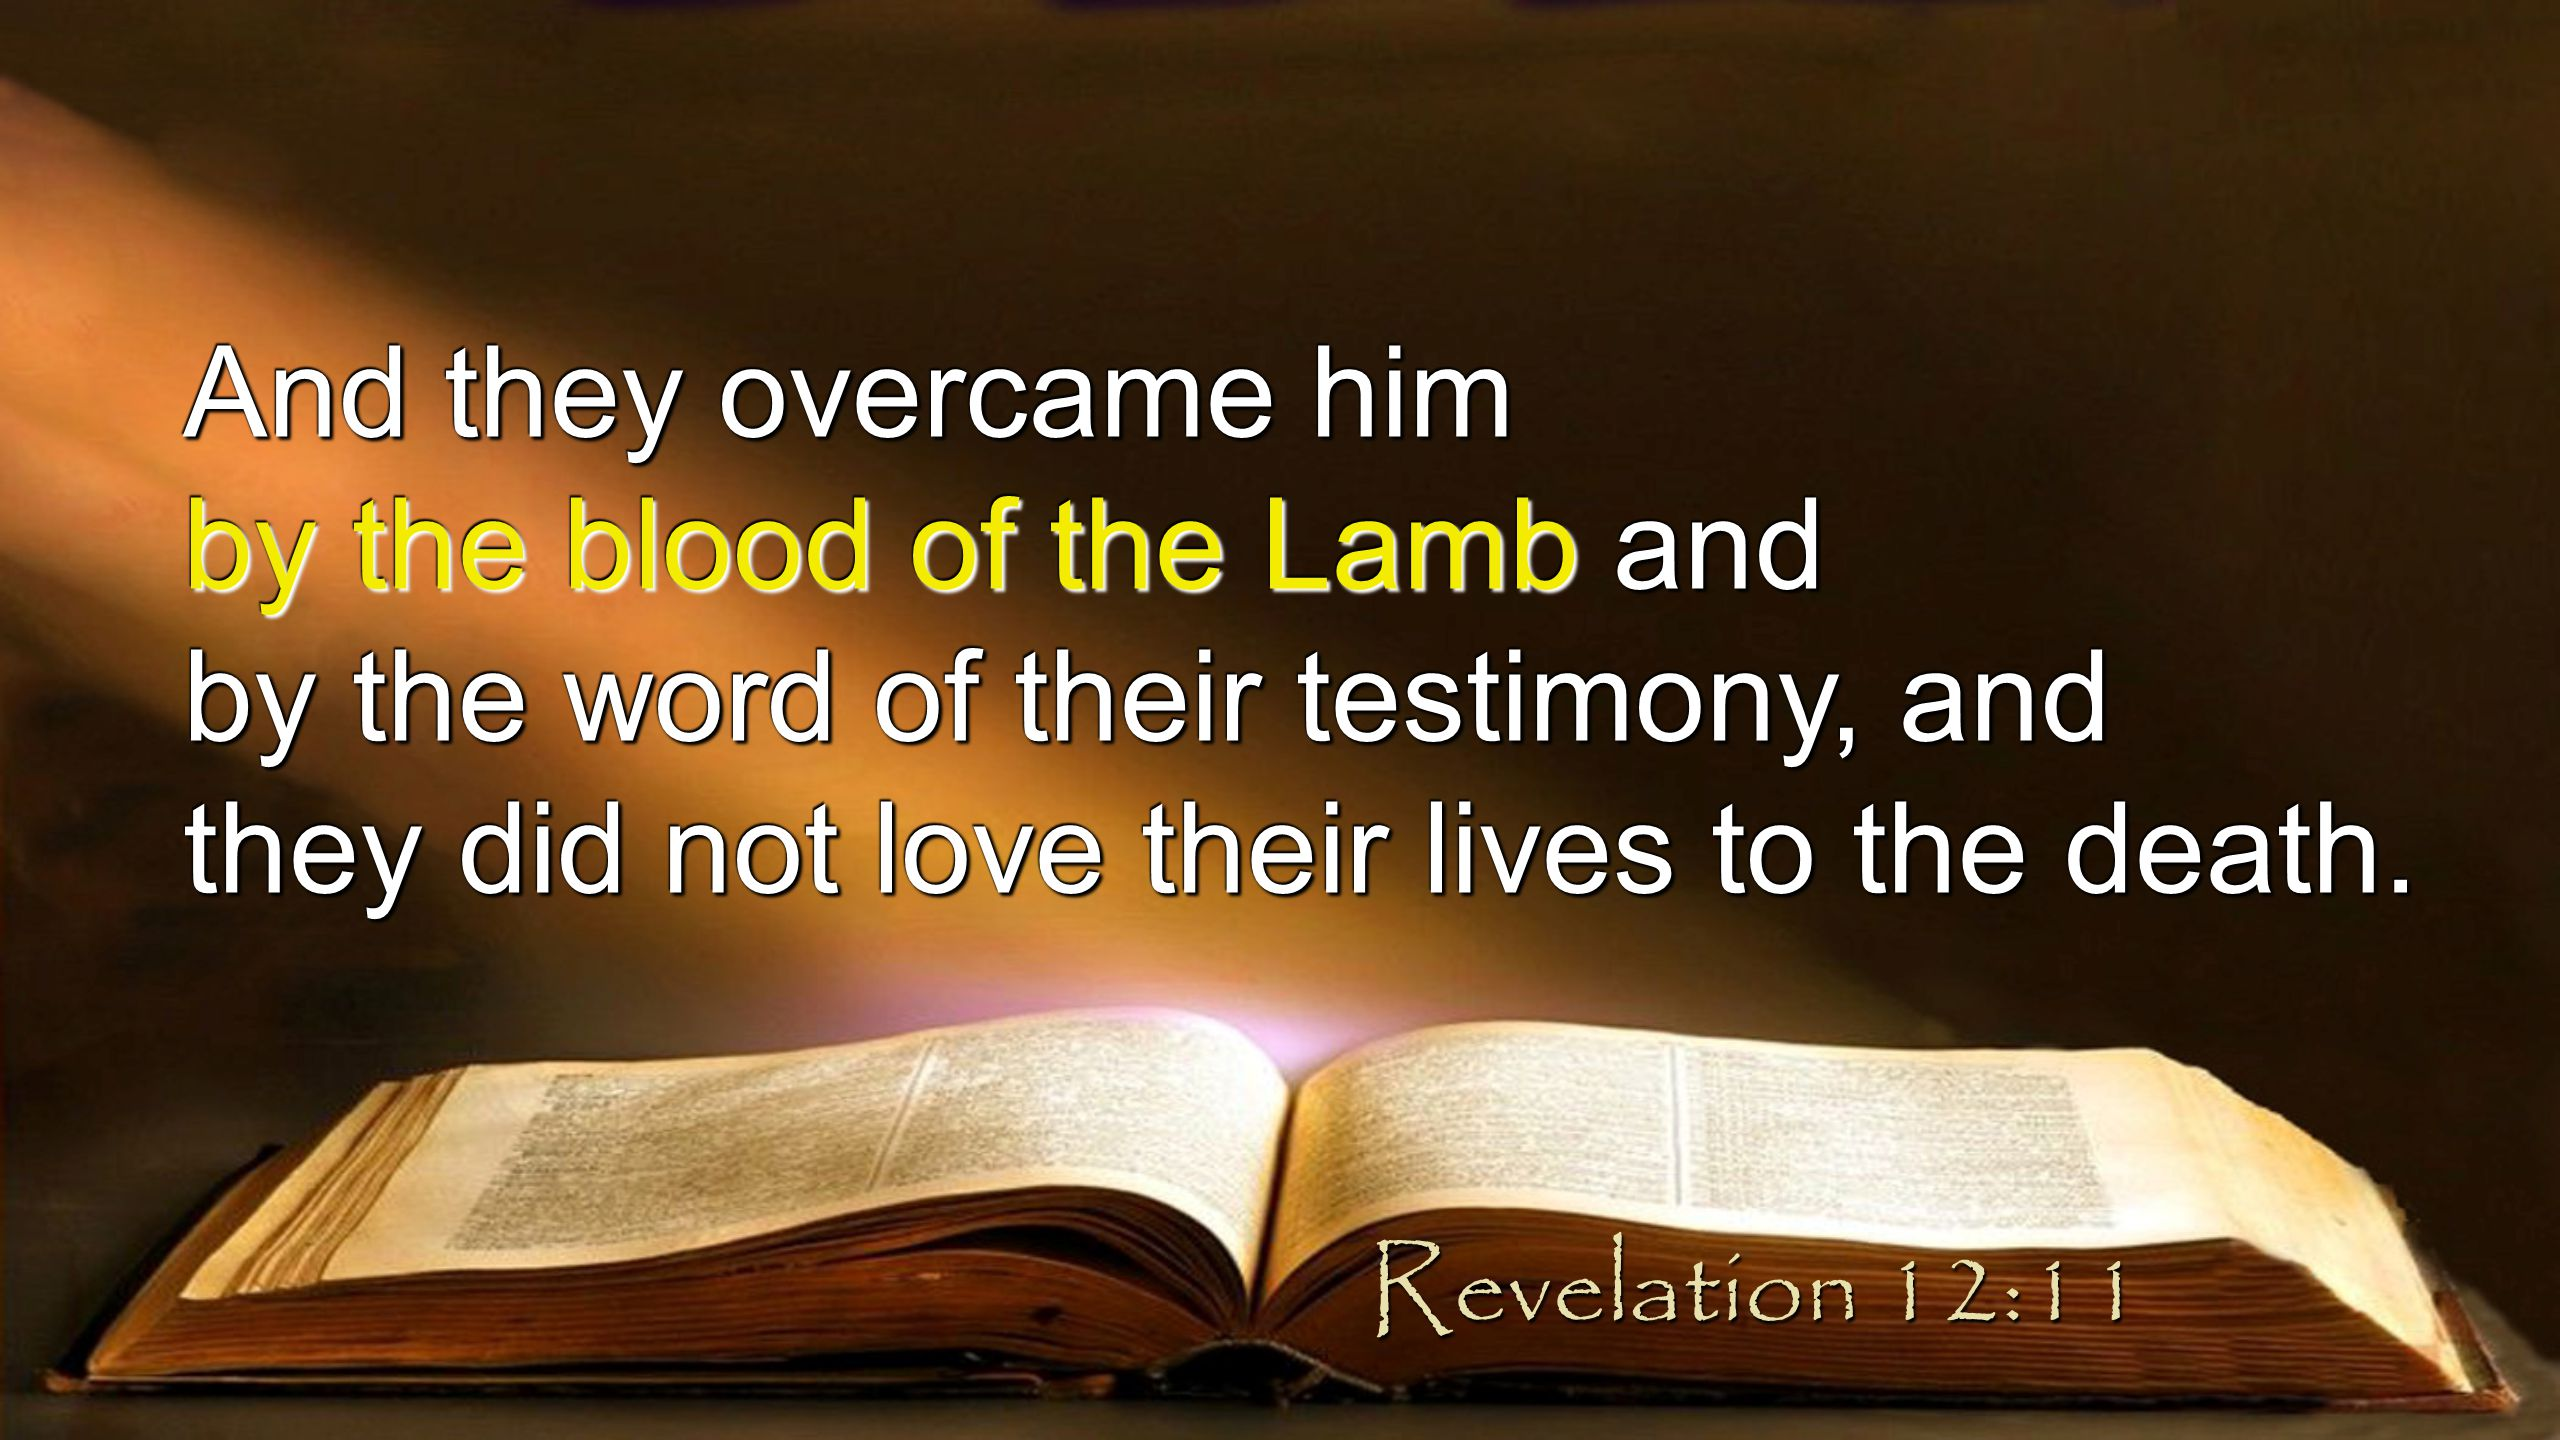 And they overcame him by the blood of the Lamb and by the word of their testimony, and they did not love their lives to the death.